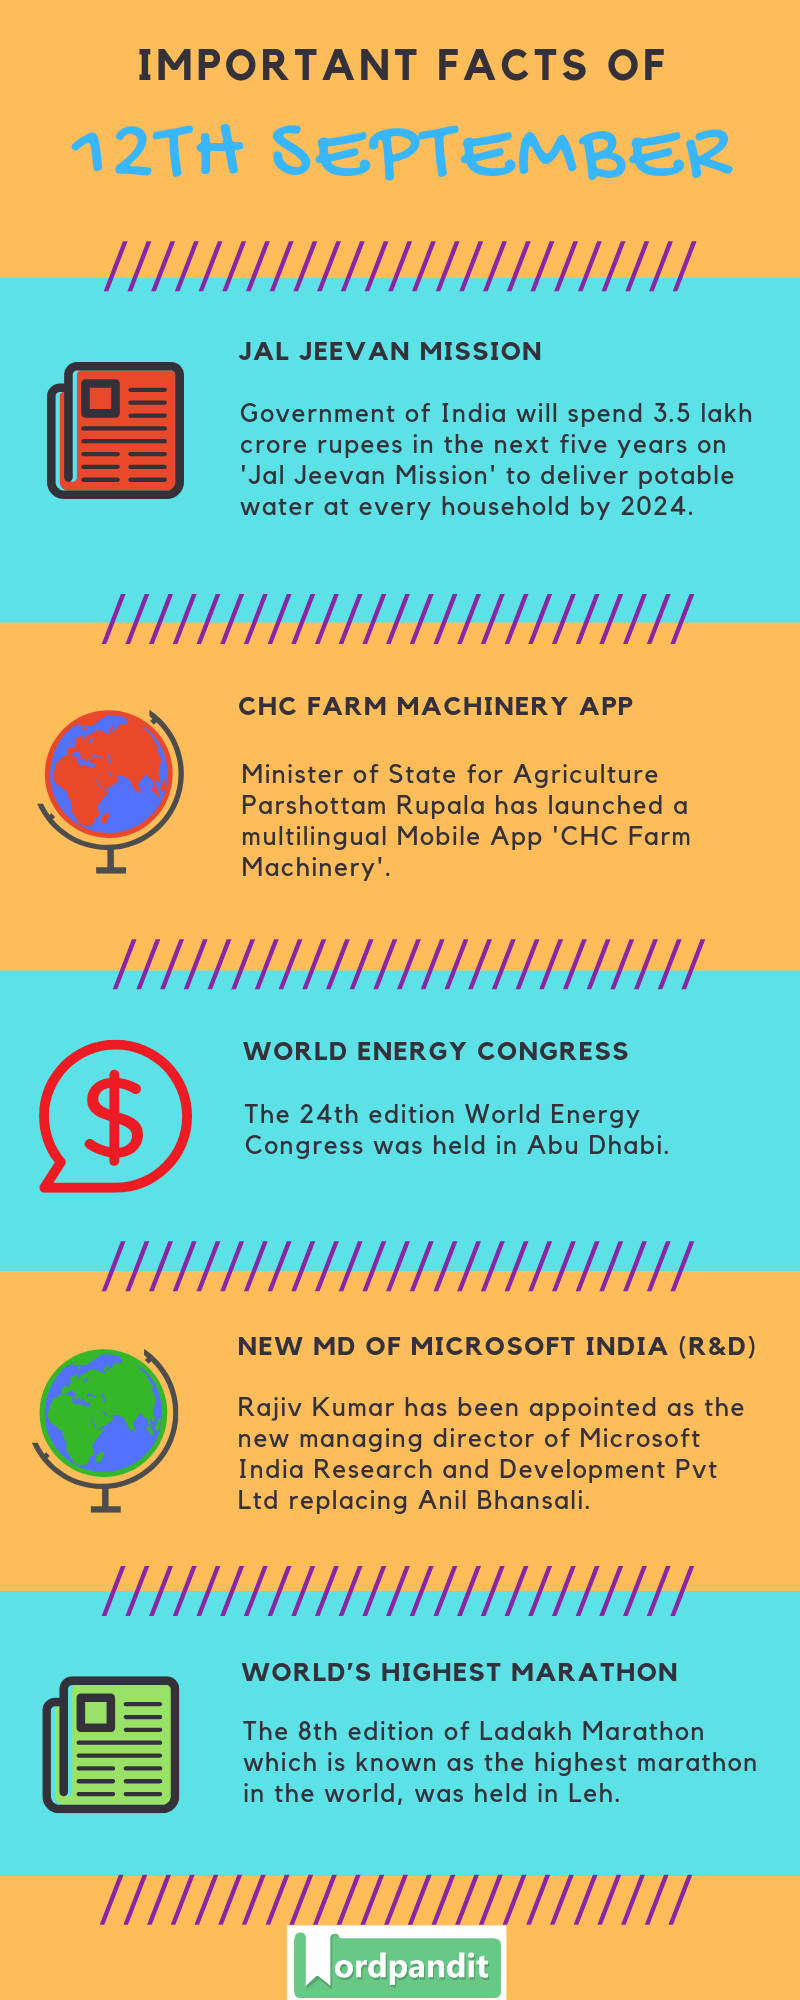 Daily Current Affairs 12 September 2019 Current Affairs Quiz 12 September 2019 Current Affairs Infographic